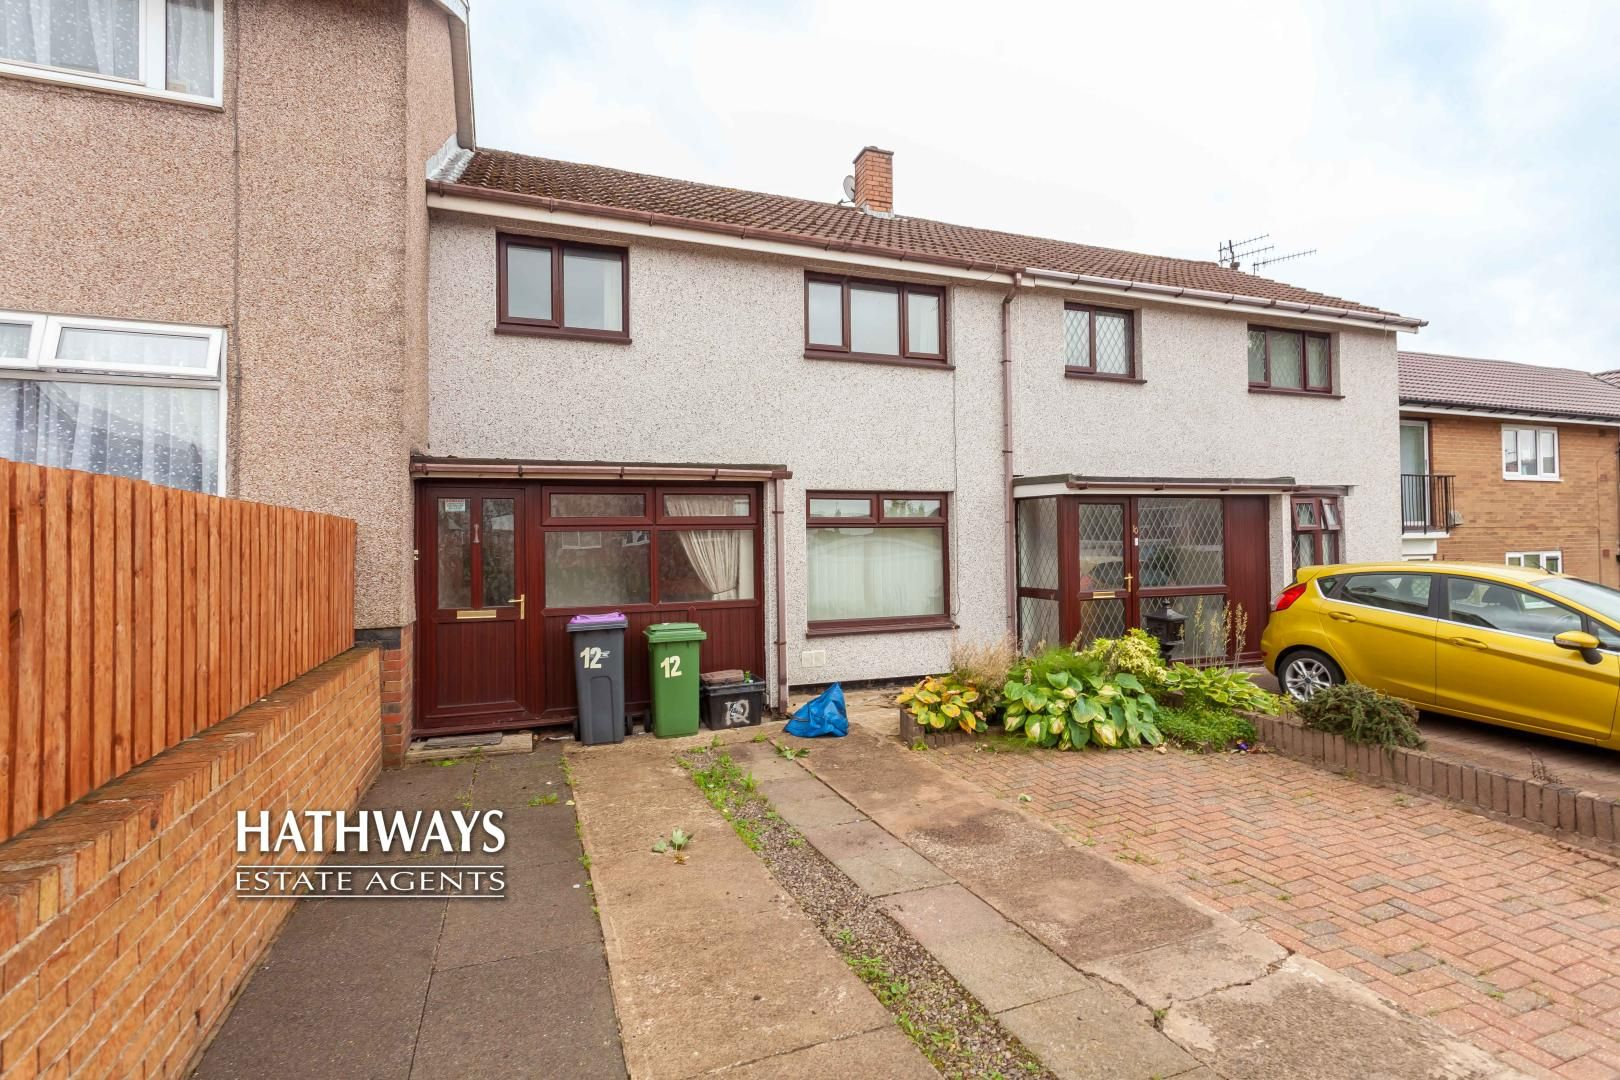 3 bed house for sale in Pembroke Place, NP44